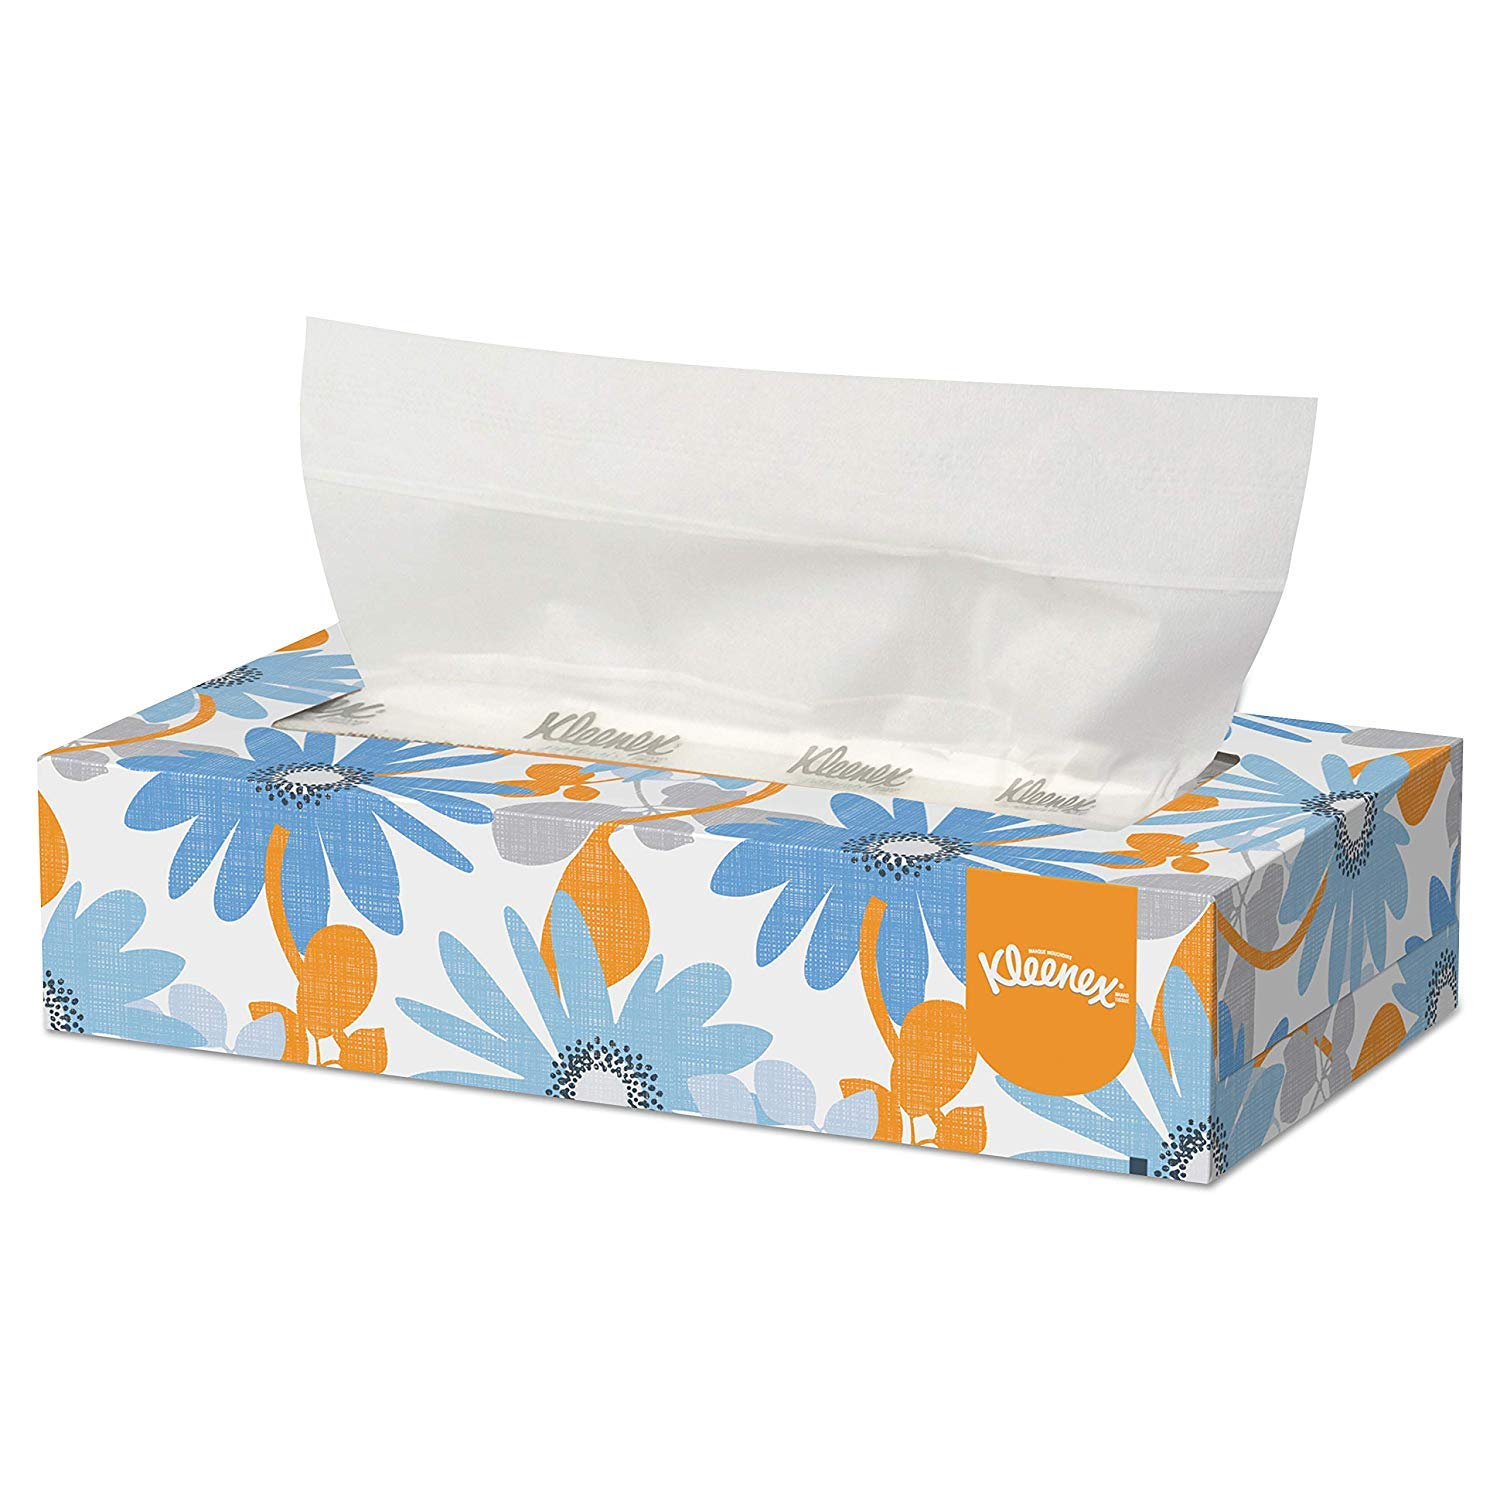 Kleenex Professional Facial Tissue for Business (03076), Flat Tissue Boxes, 24 Boxes/Convenience Case, 125 Tissues/Box